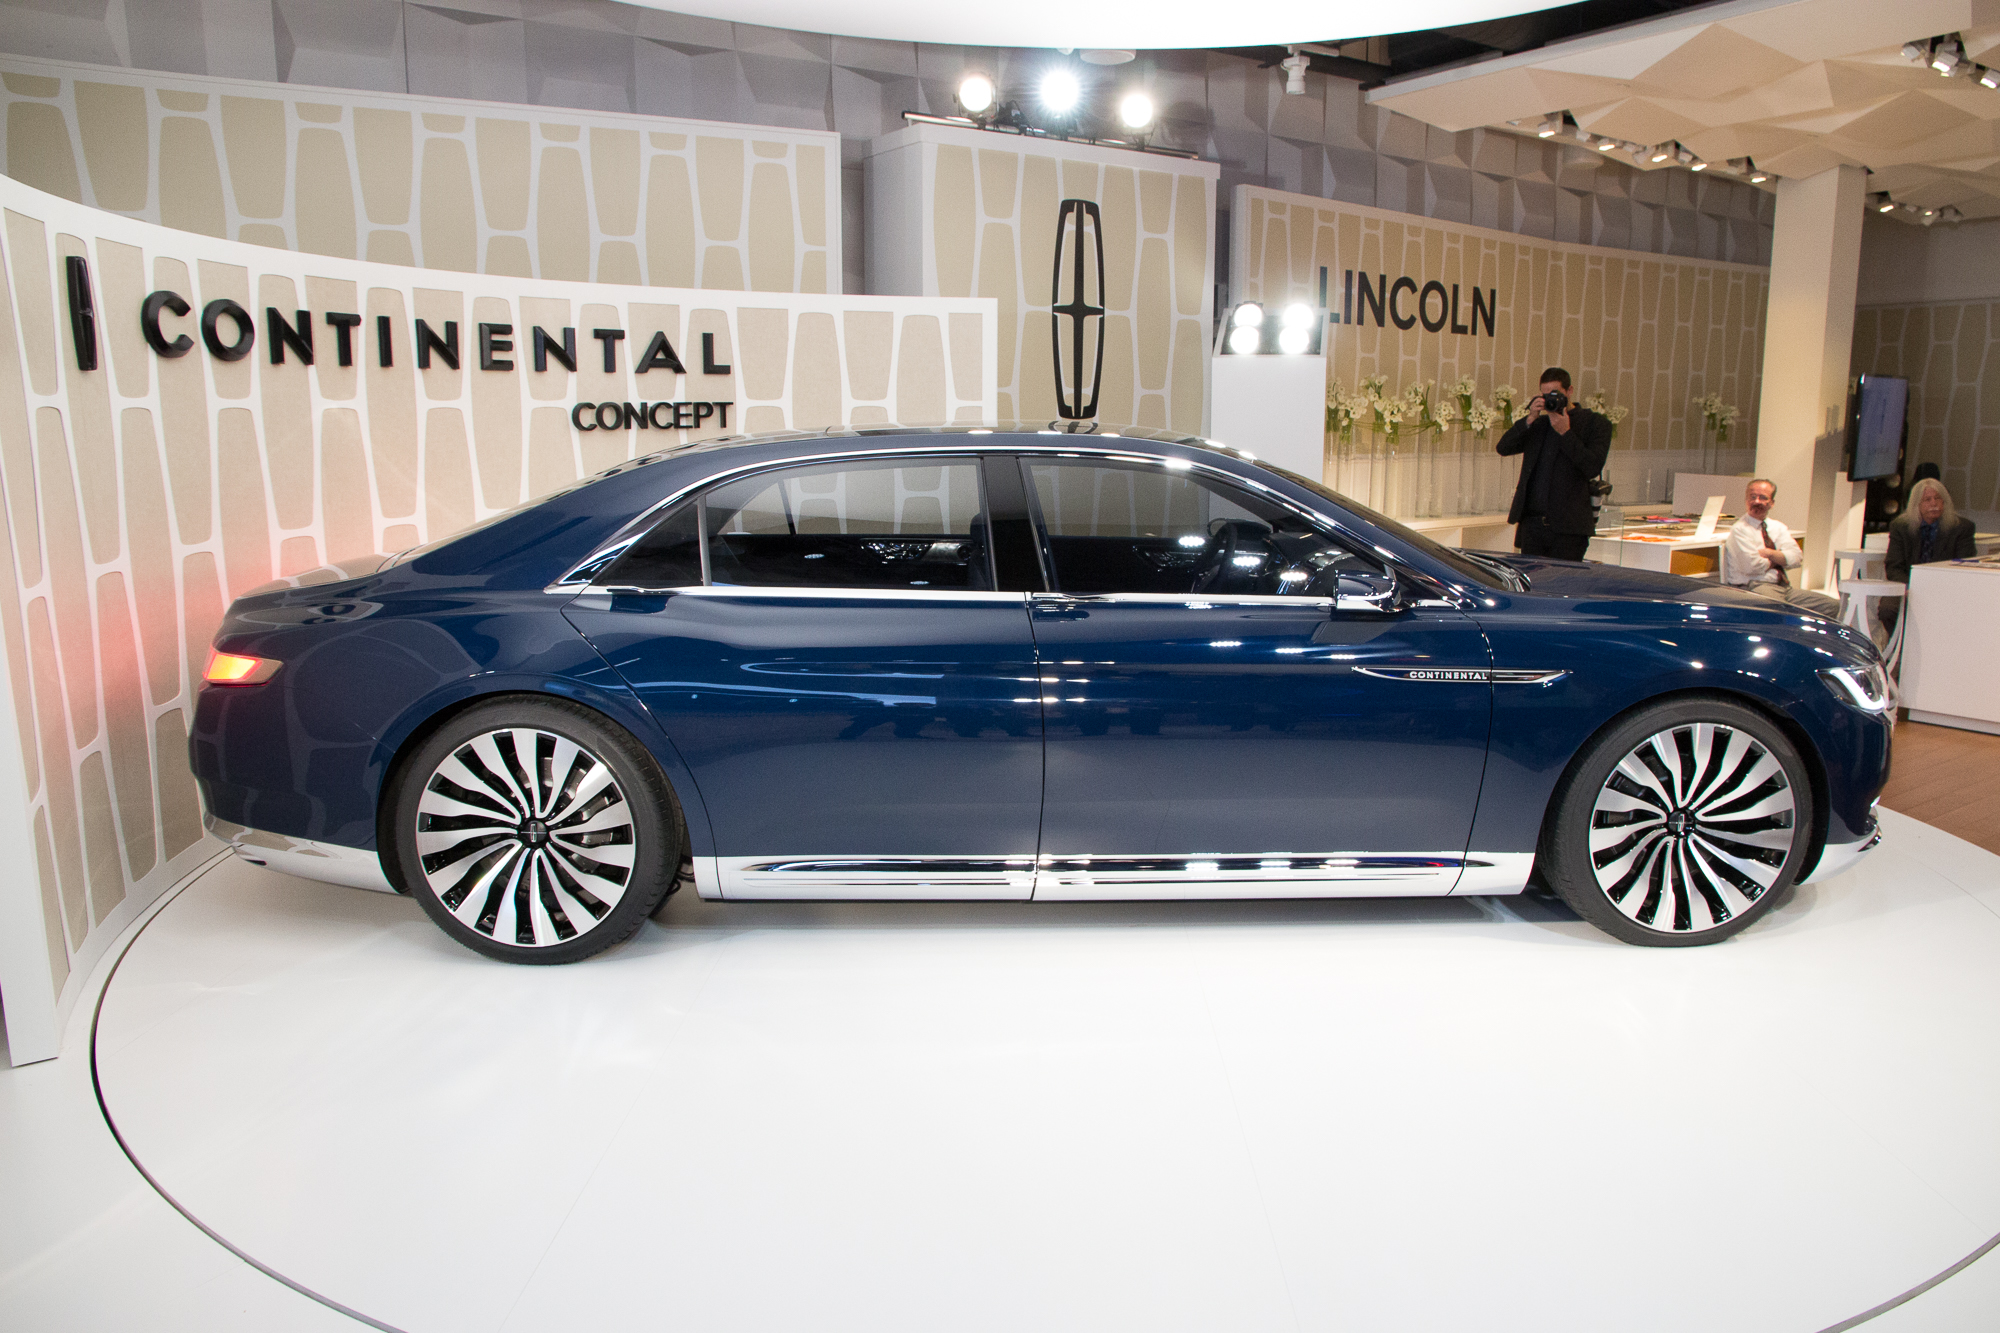 2015 - [Lincoln] Continental Lincoln-continental-concept-unveiling-new-york-city-march-29-2015_100505977_h